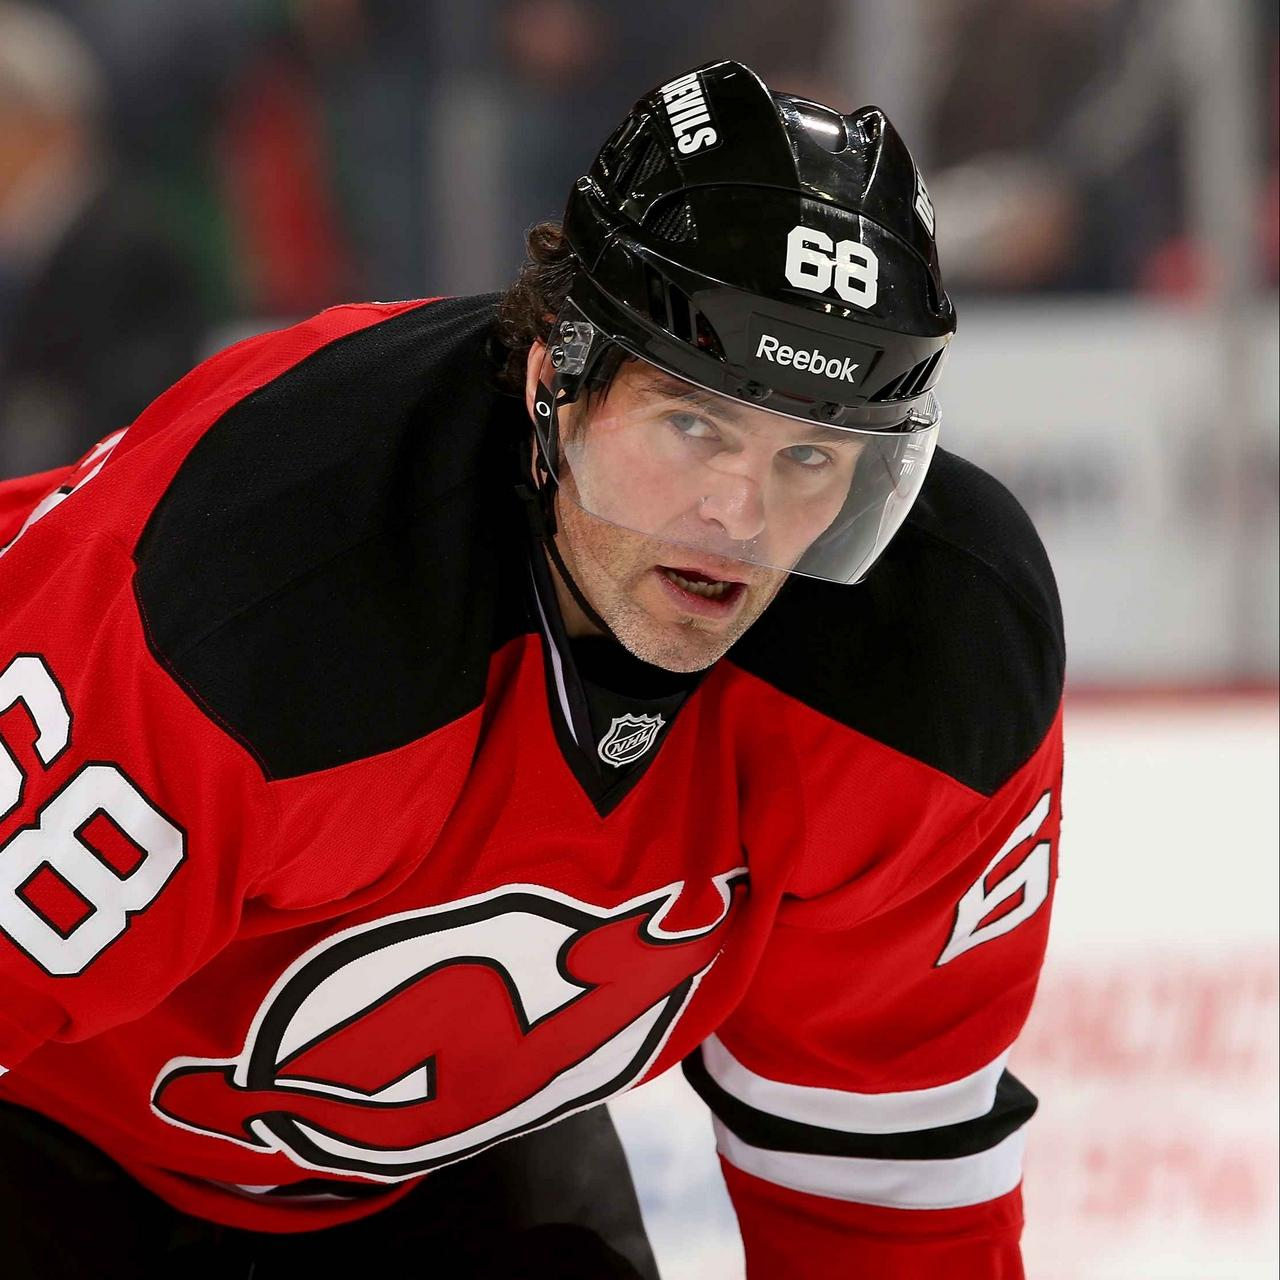 Download wallpapers 1280x1280 jaromir jagr, hockey player, striker